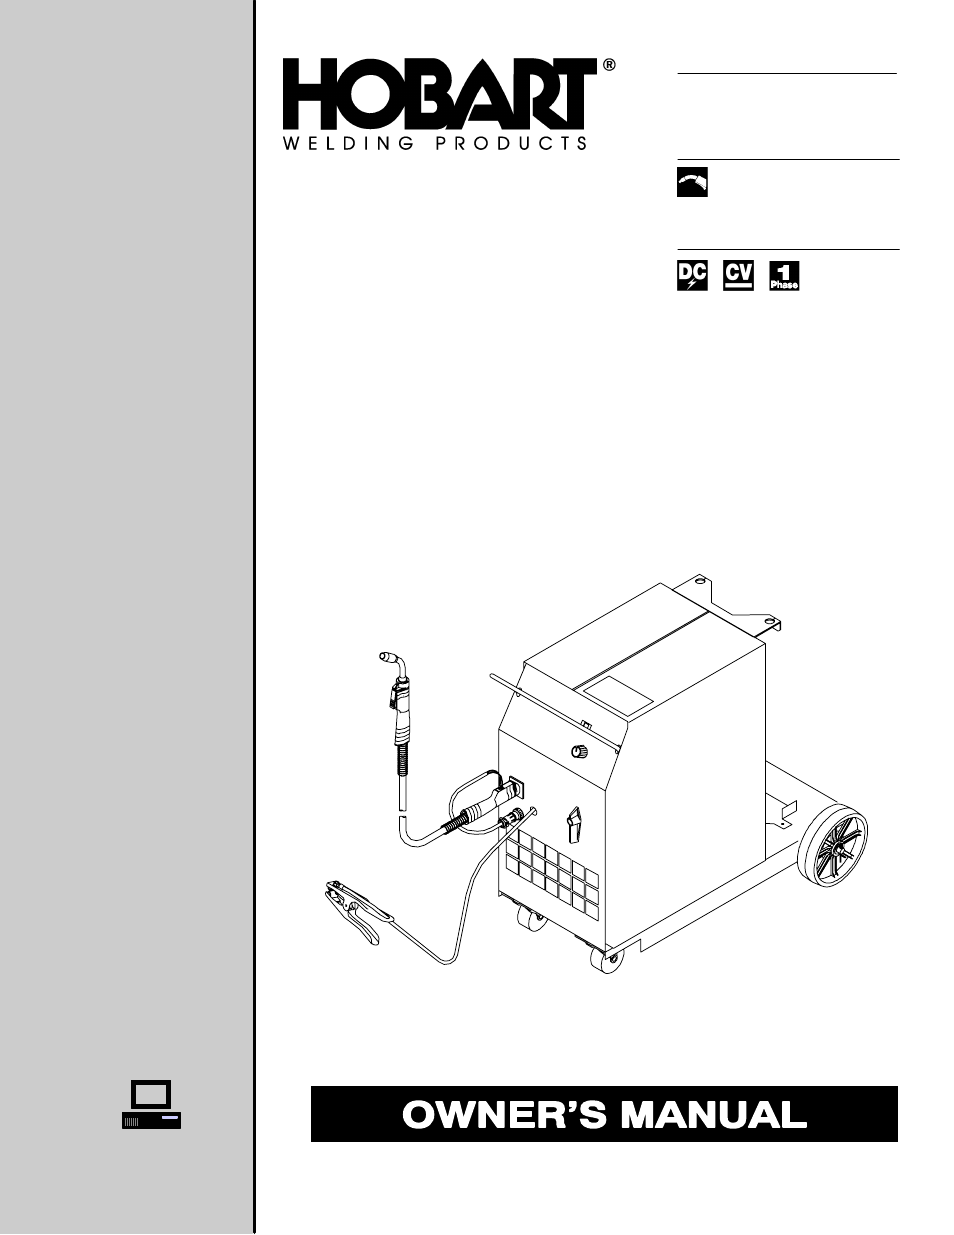 hobart welding products beta mig 1800 page1 hobart welding products beta mig 1800 user manual 36 pages